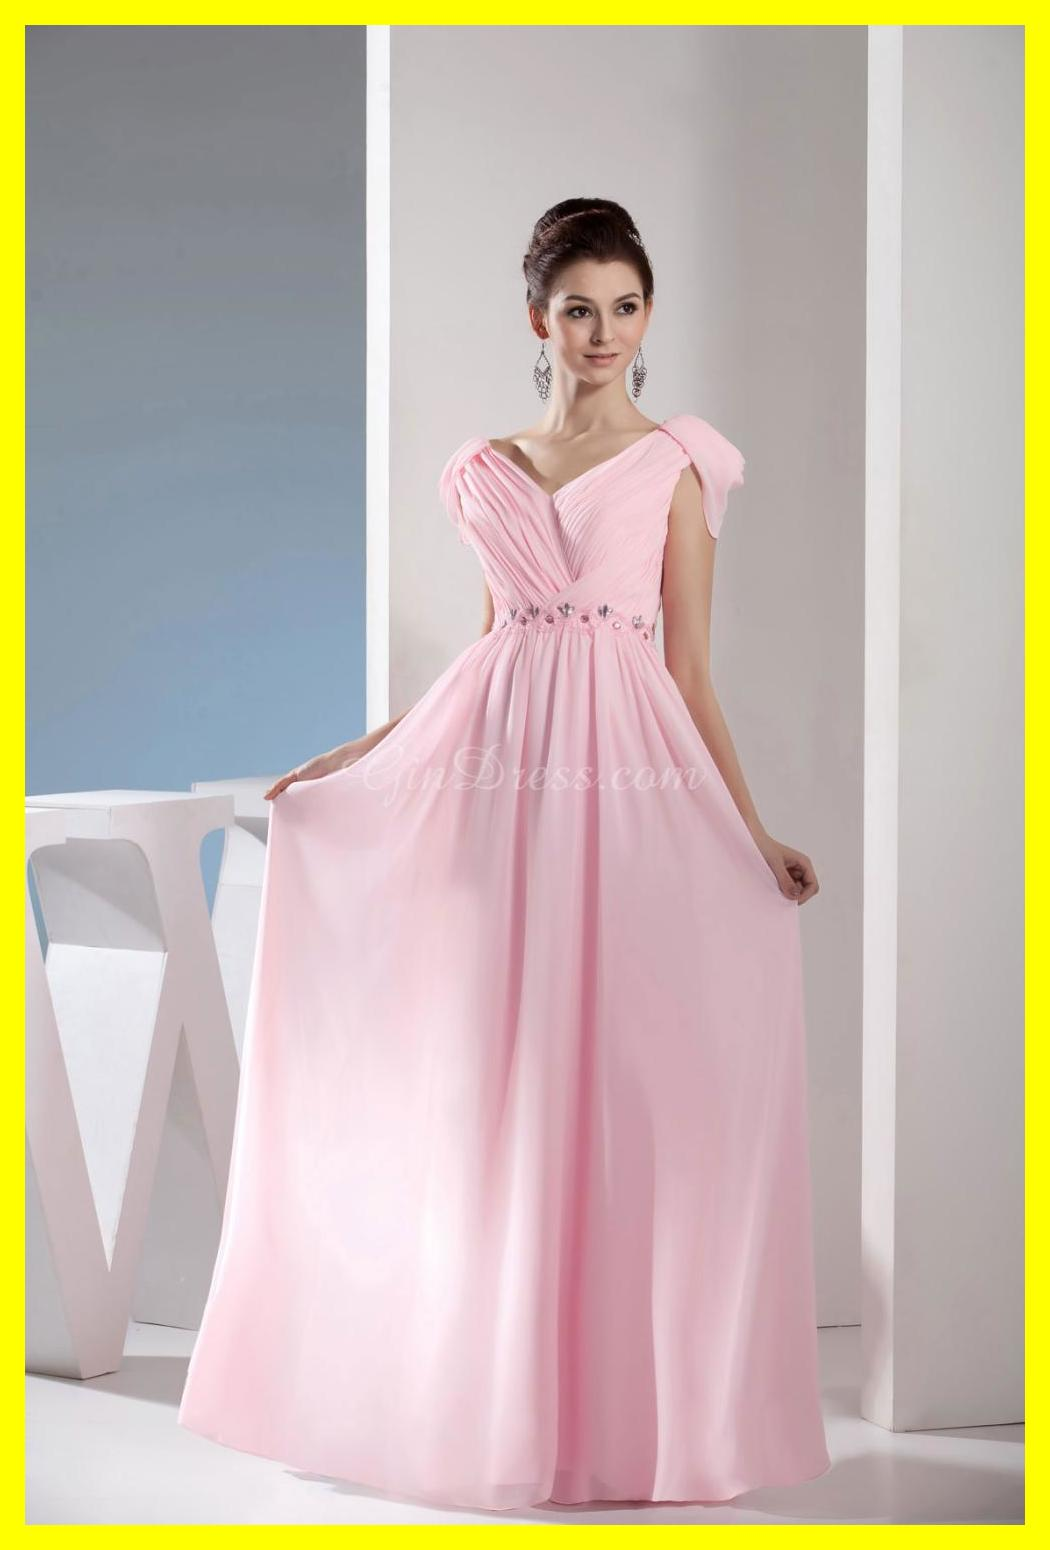 Modern wedding dresses for young cheap bridesmaid dresses cheap bridesmaid dresses singapore online ombrellifo Image collections